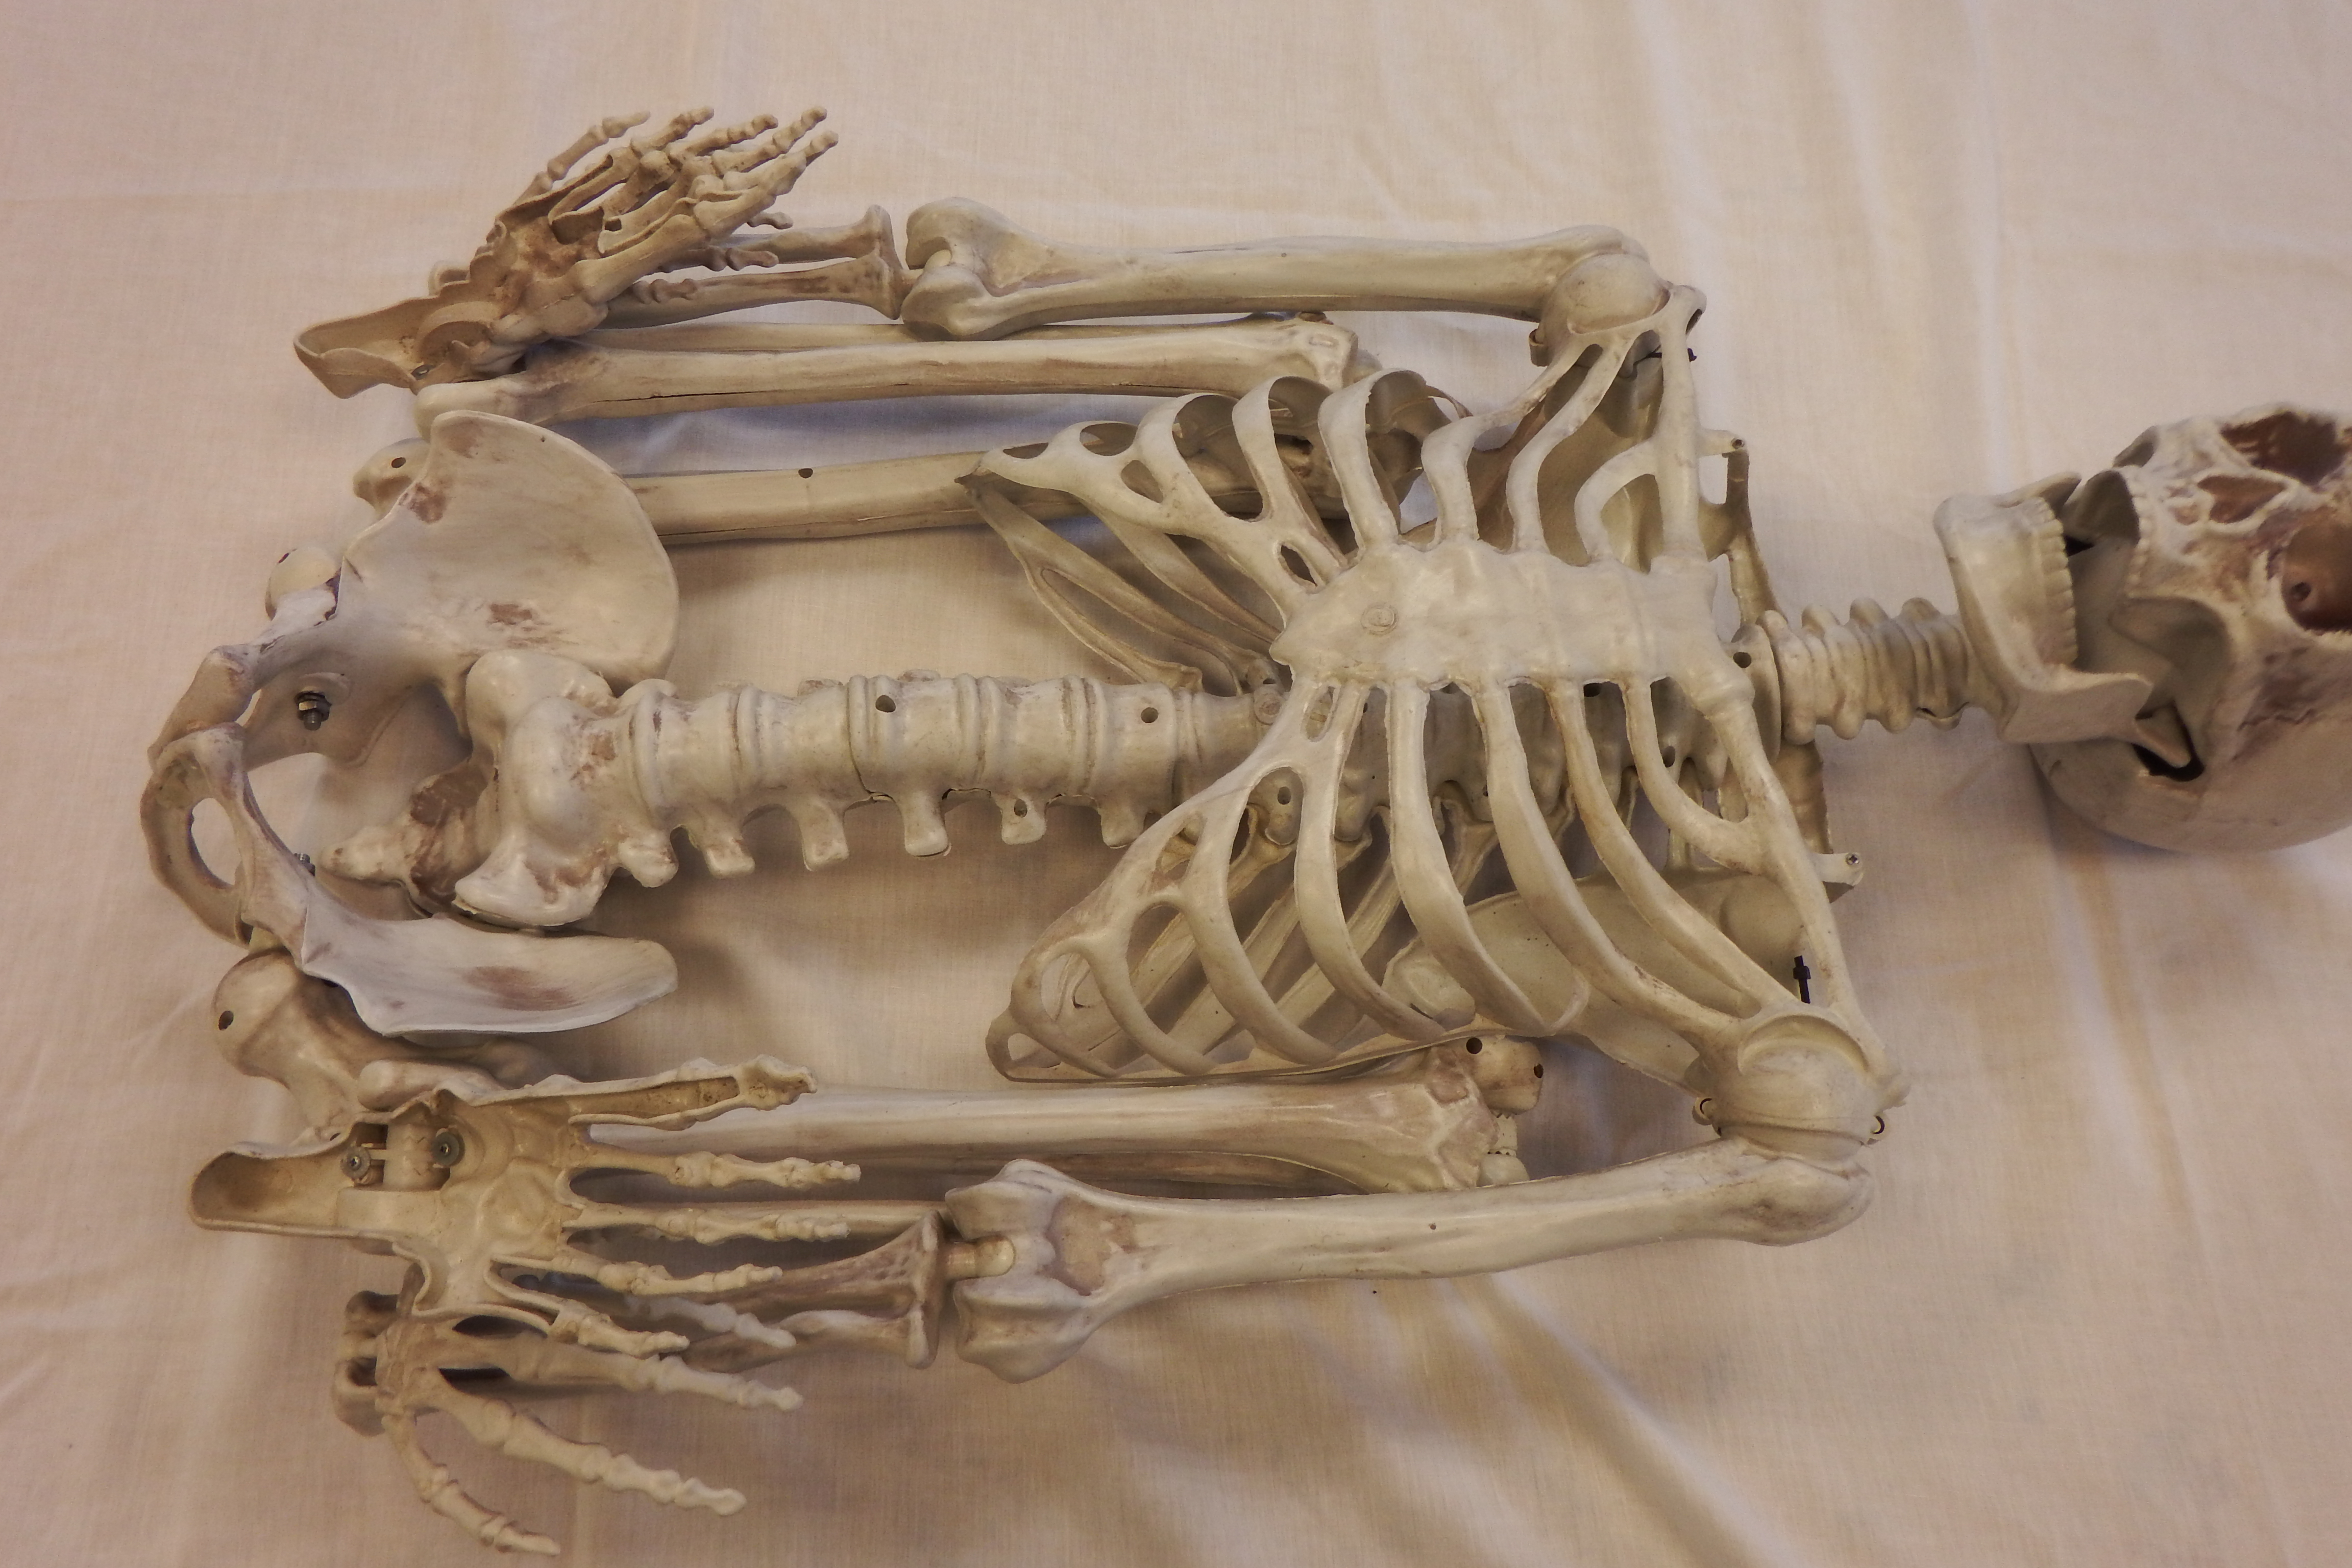 Picture of Skeleton in Your Closet, Literally.